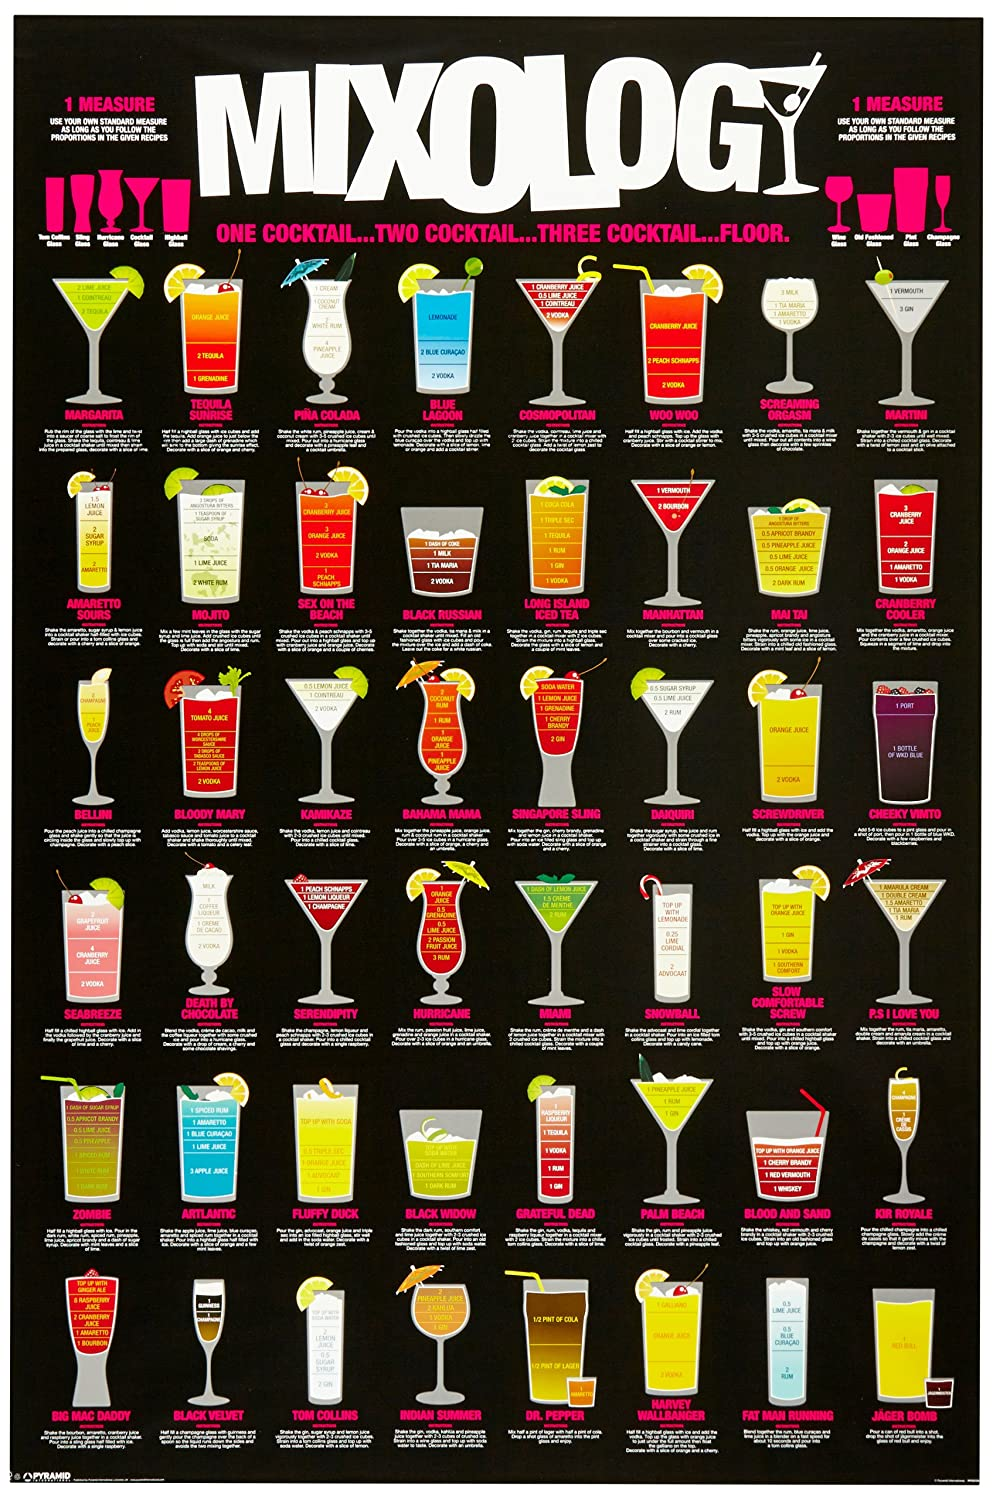 Winter Cocktails of the Farmers Market in San Francisco California profile at farmers market online